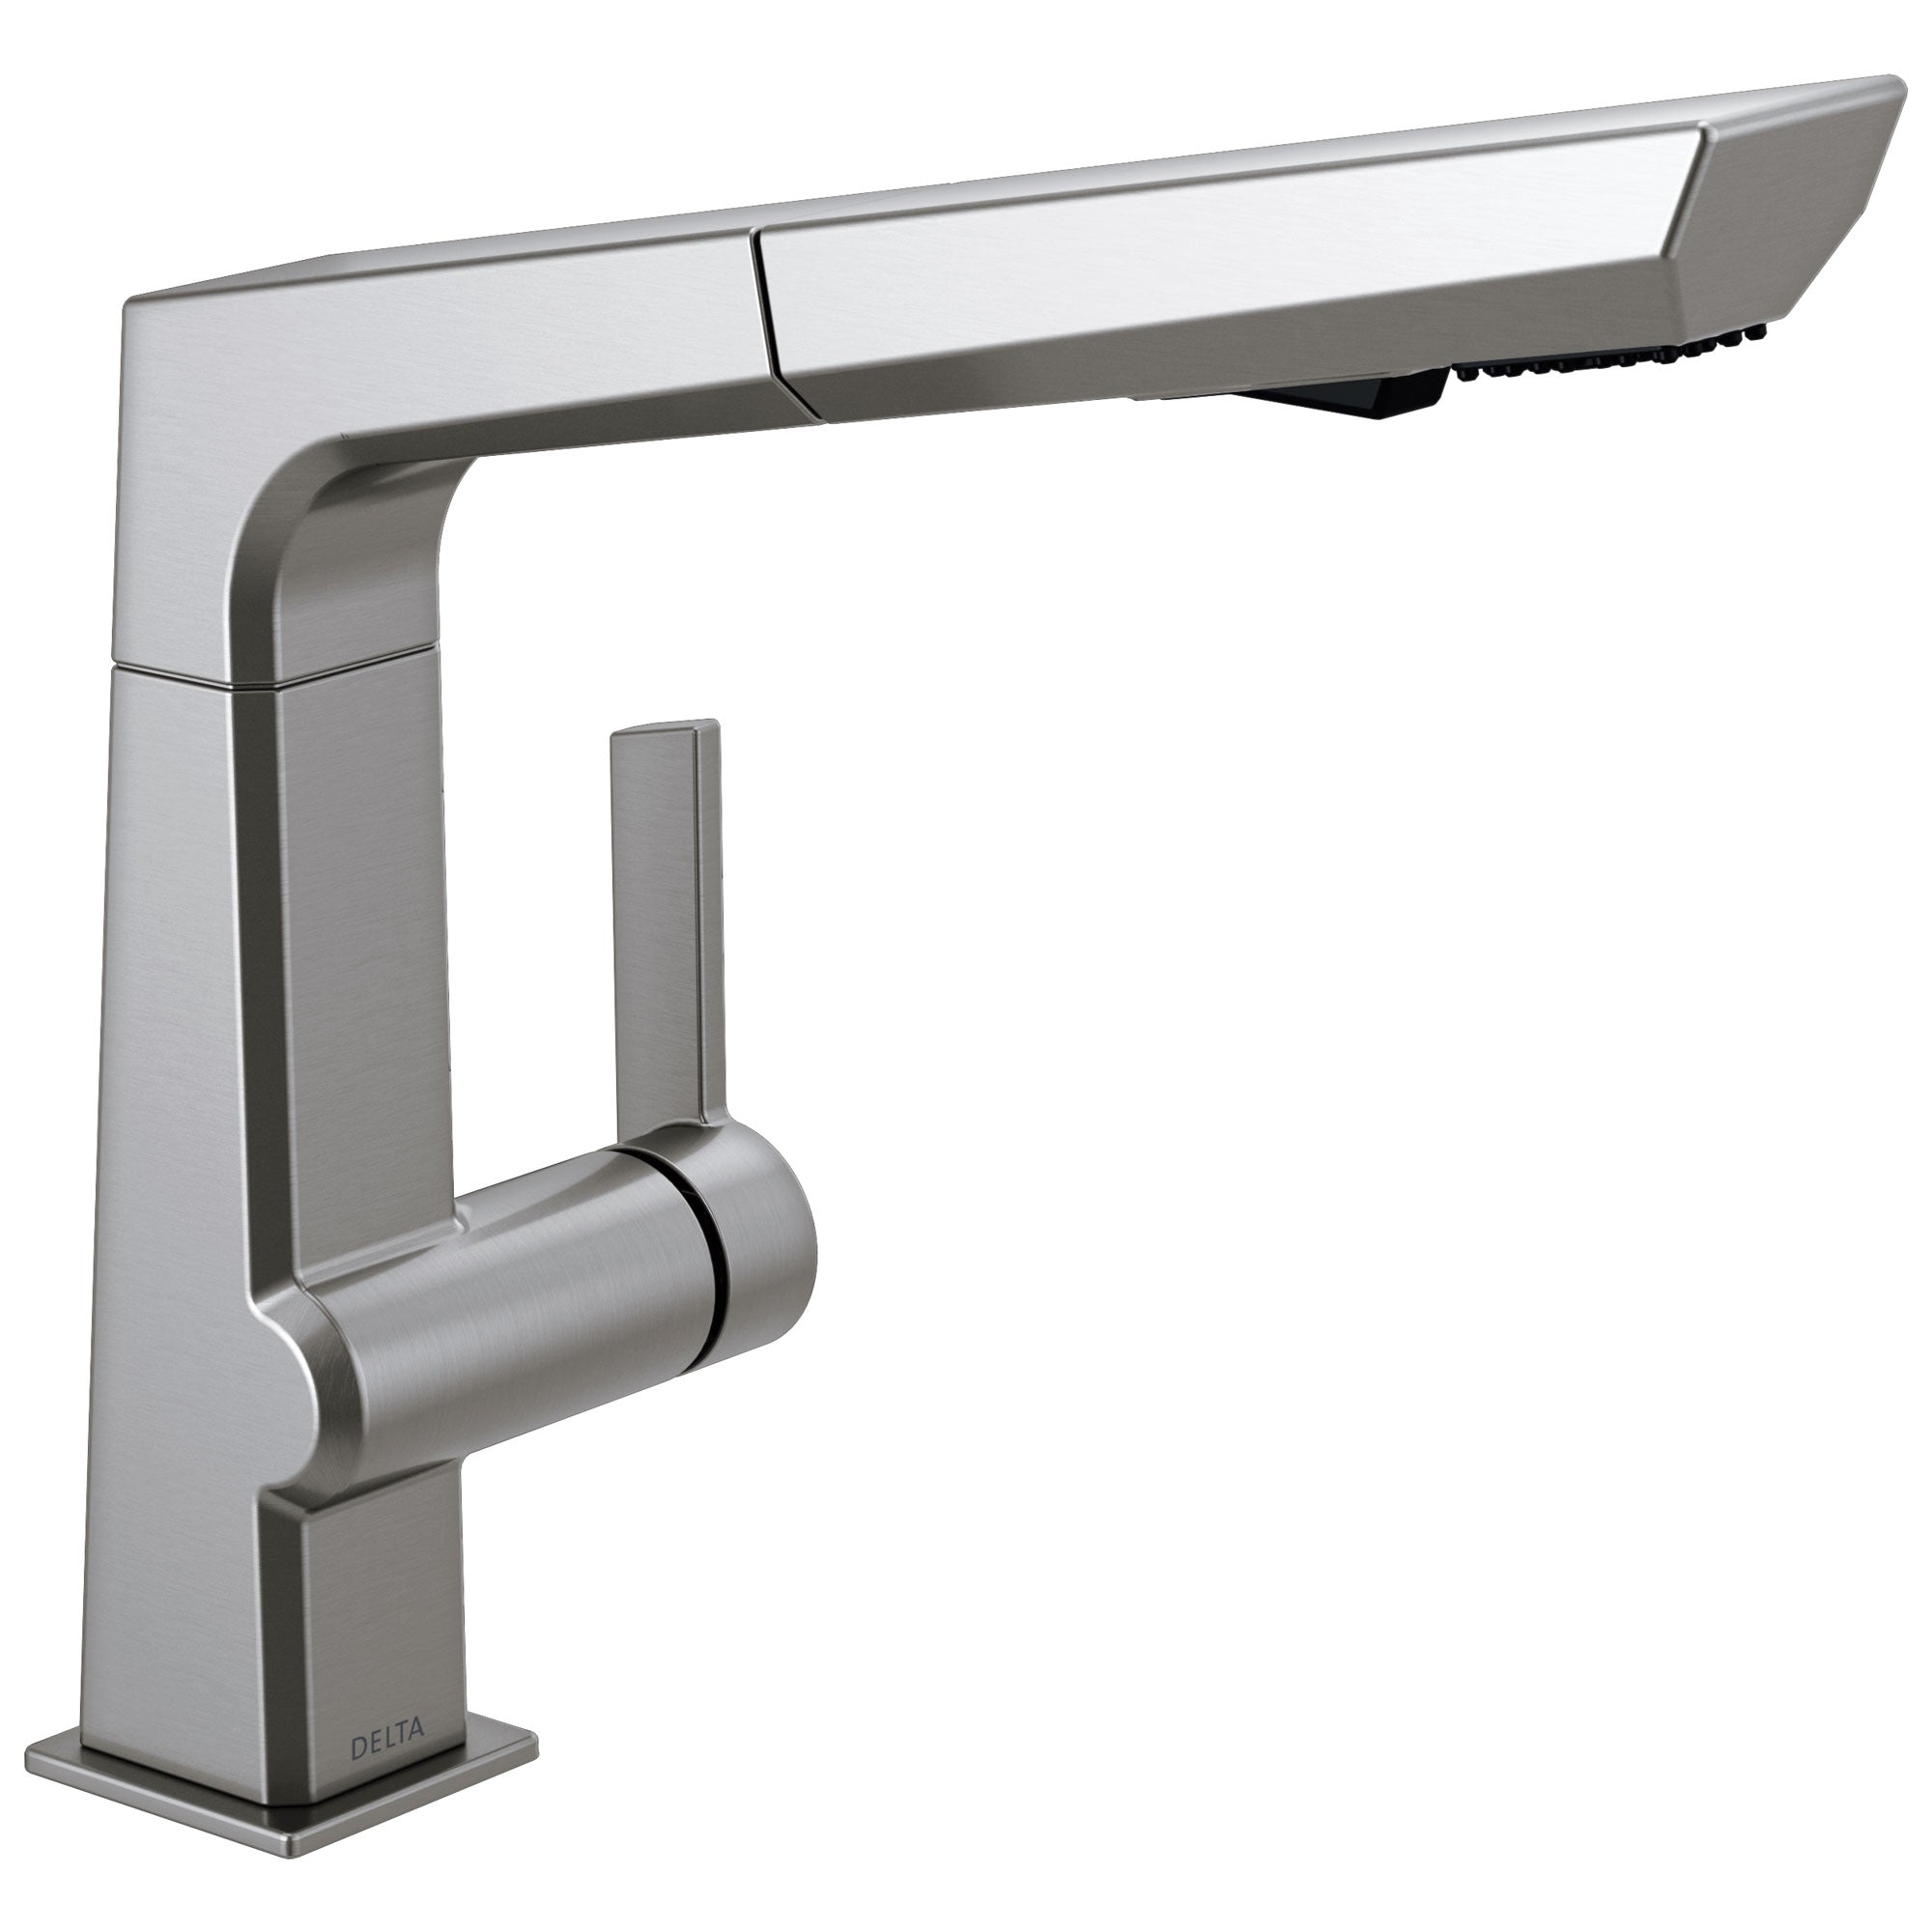 Delta Pivotal Modern Arctic Stainless Steel Finish Single Handle Pull-Out Kitchen Faucet D4193ARDST